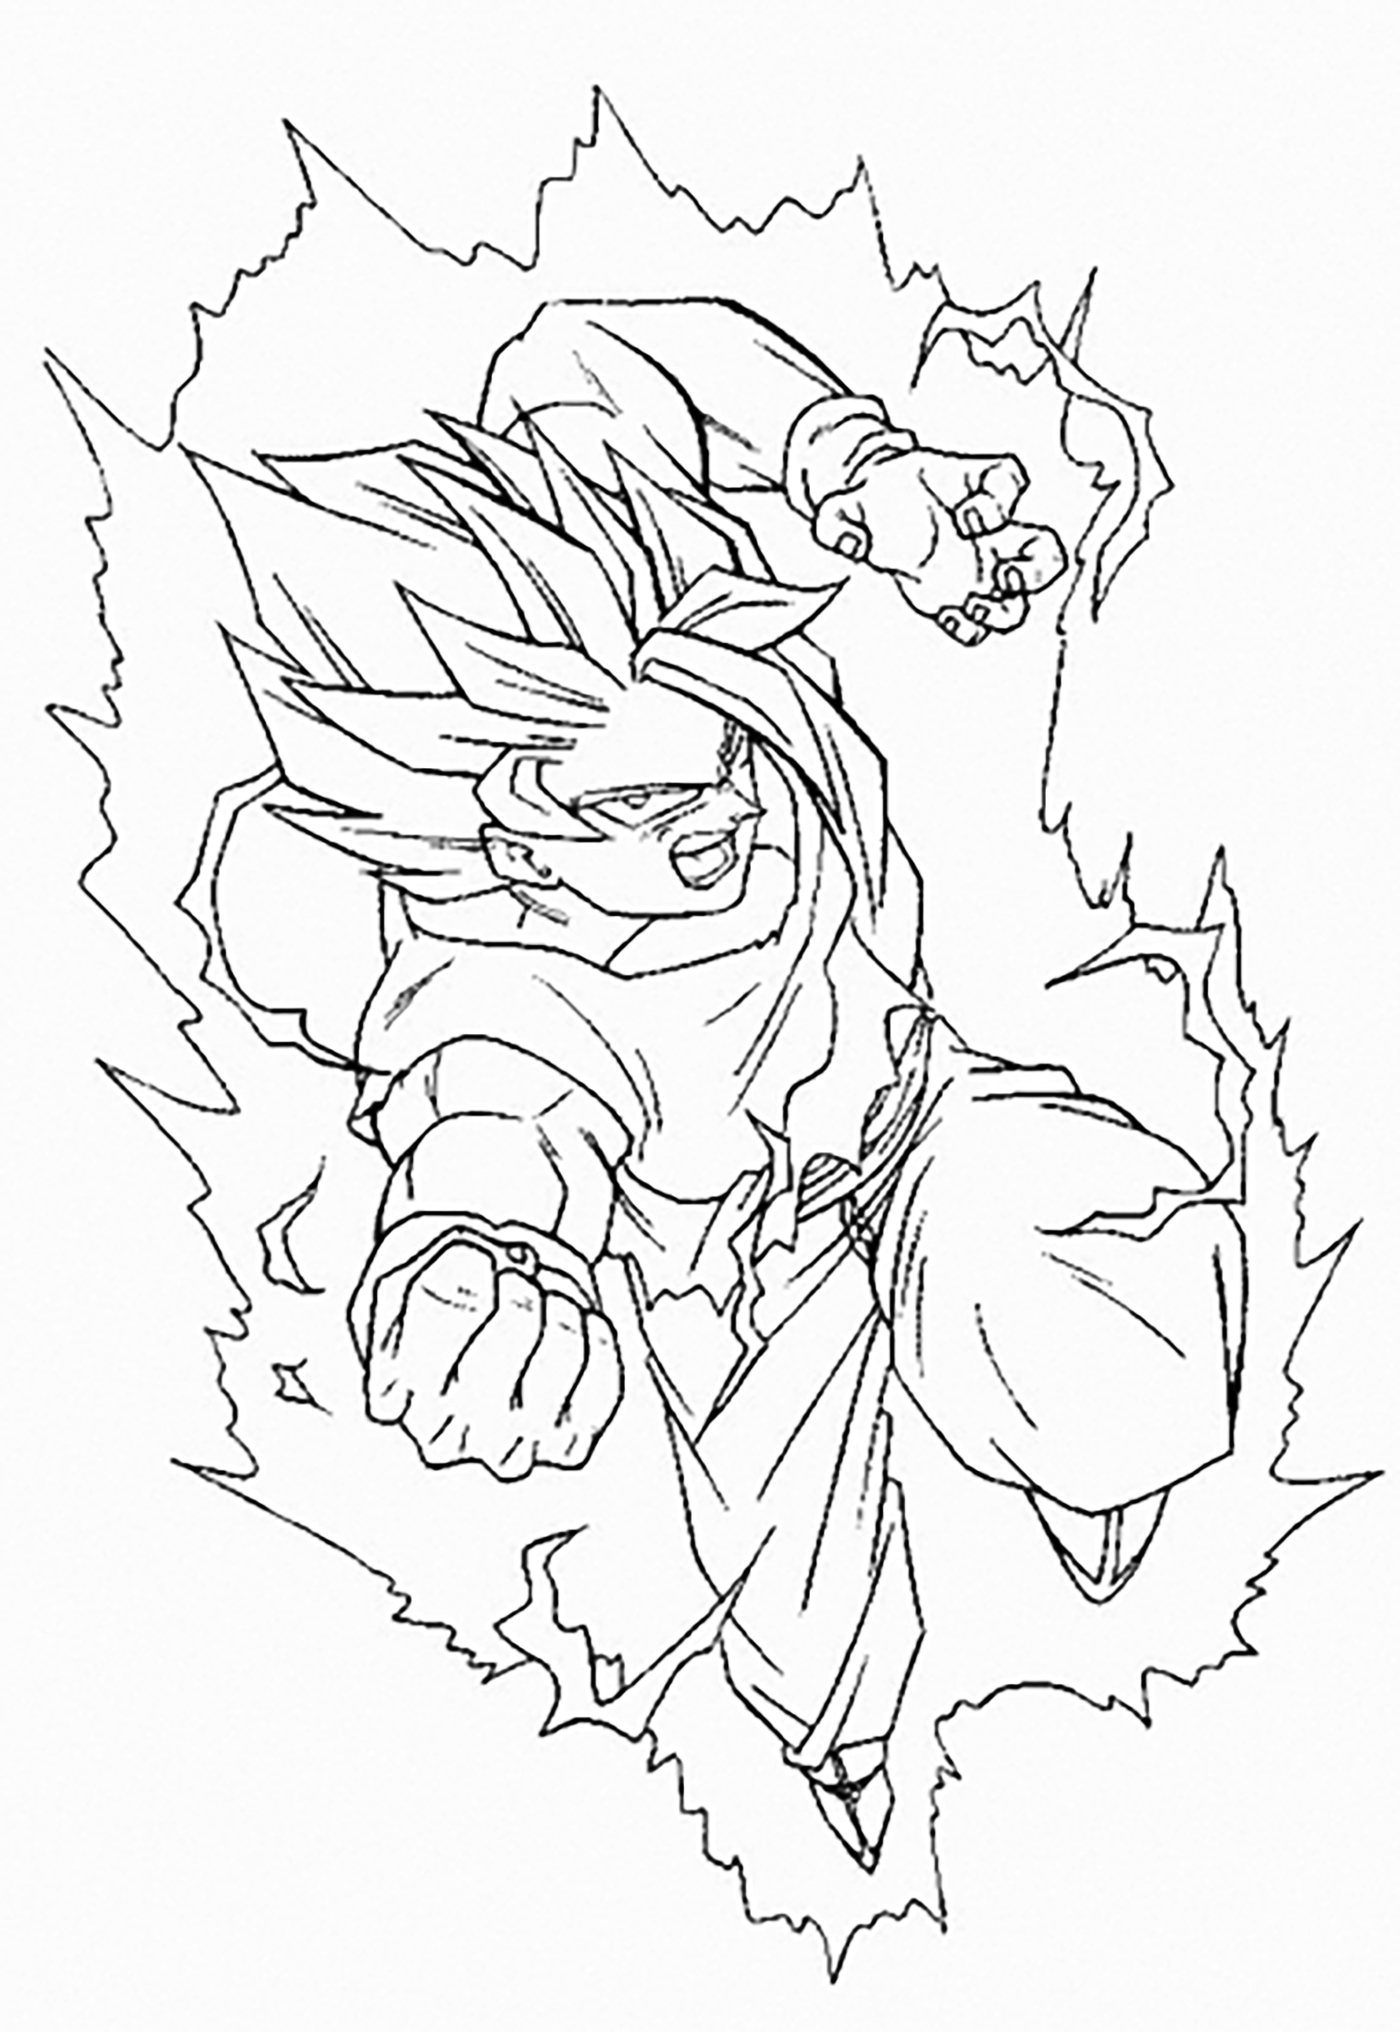 Facile dragon ball goku super saiyan 2 contre buu coloriage dragon ball z coloriages pour - Dessin de dragon ball super ...